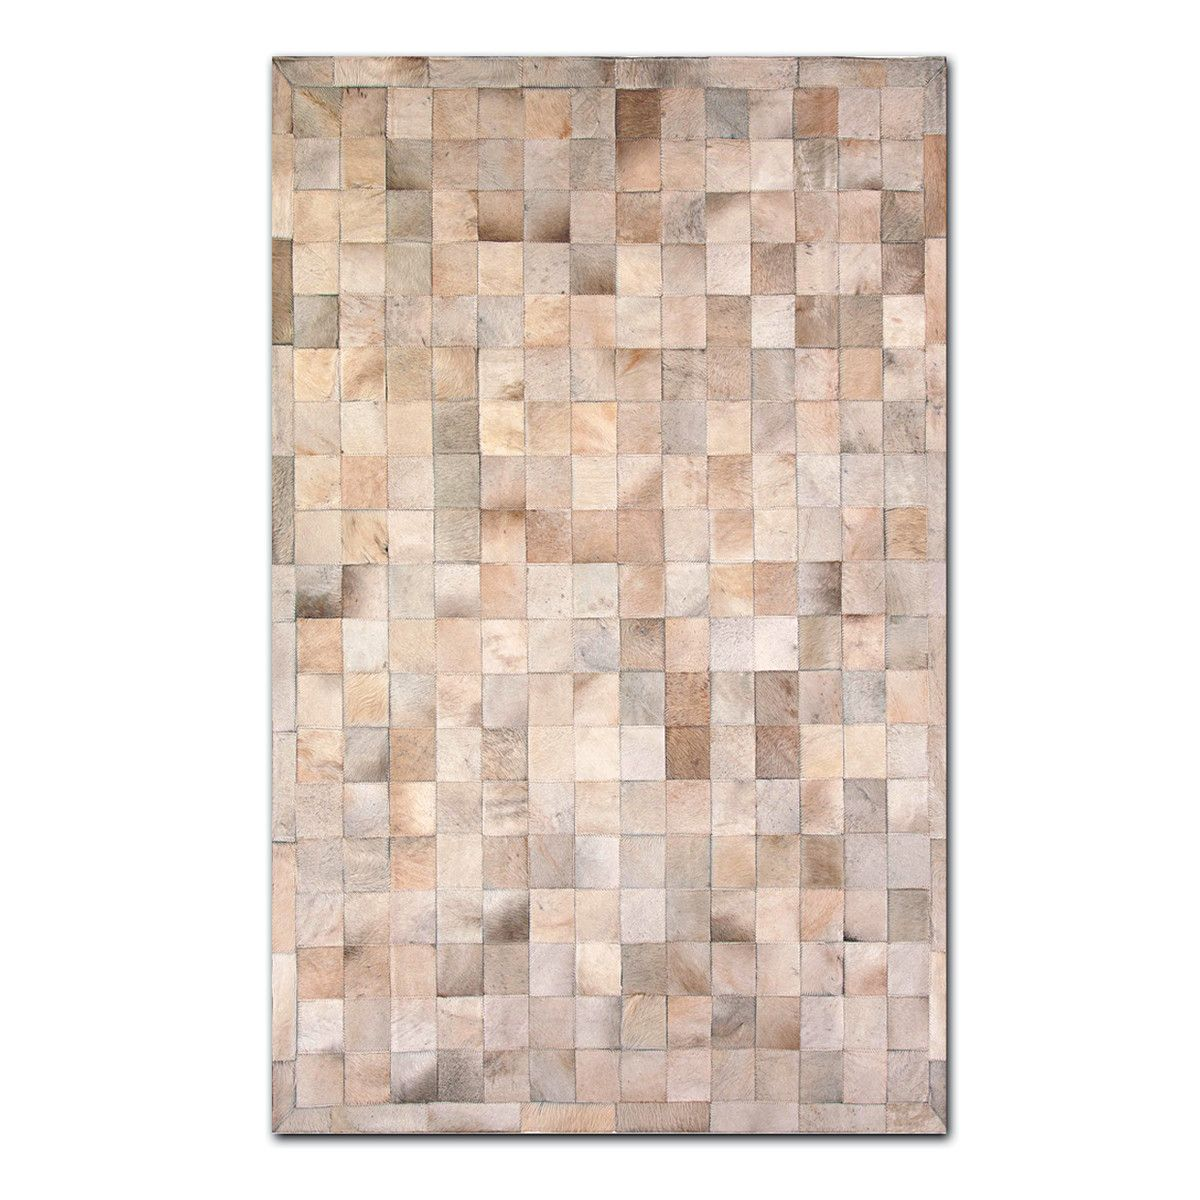 Fab.com | Barcelona Cowhide 8x5 Tan $500  A touch of the wild goes a long way into rejuvenating your decor. Designed and produced by Canada-based Natural, this rich, 100% genuine cowhide rug is a high-quality accent for that formerly dull floor—and it feels absolutely seductive as it pools beneath your feet.